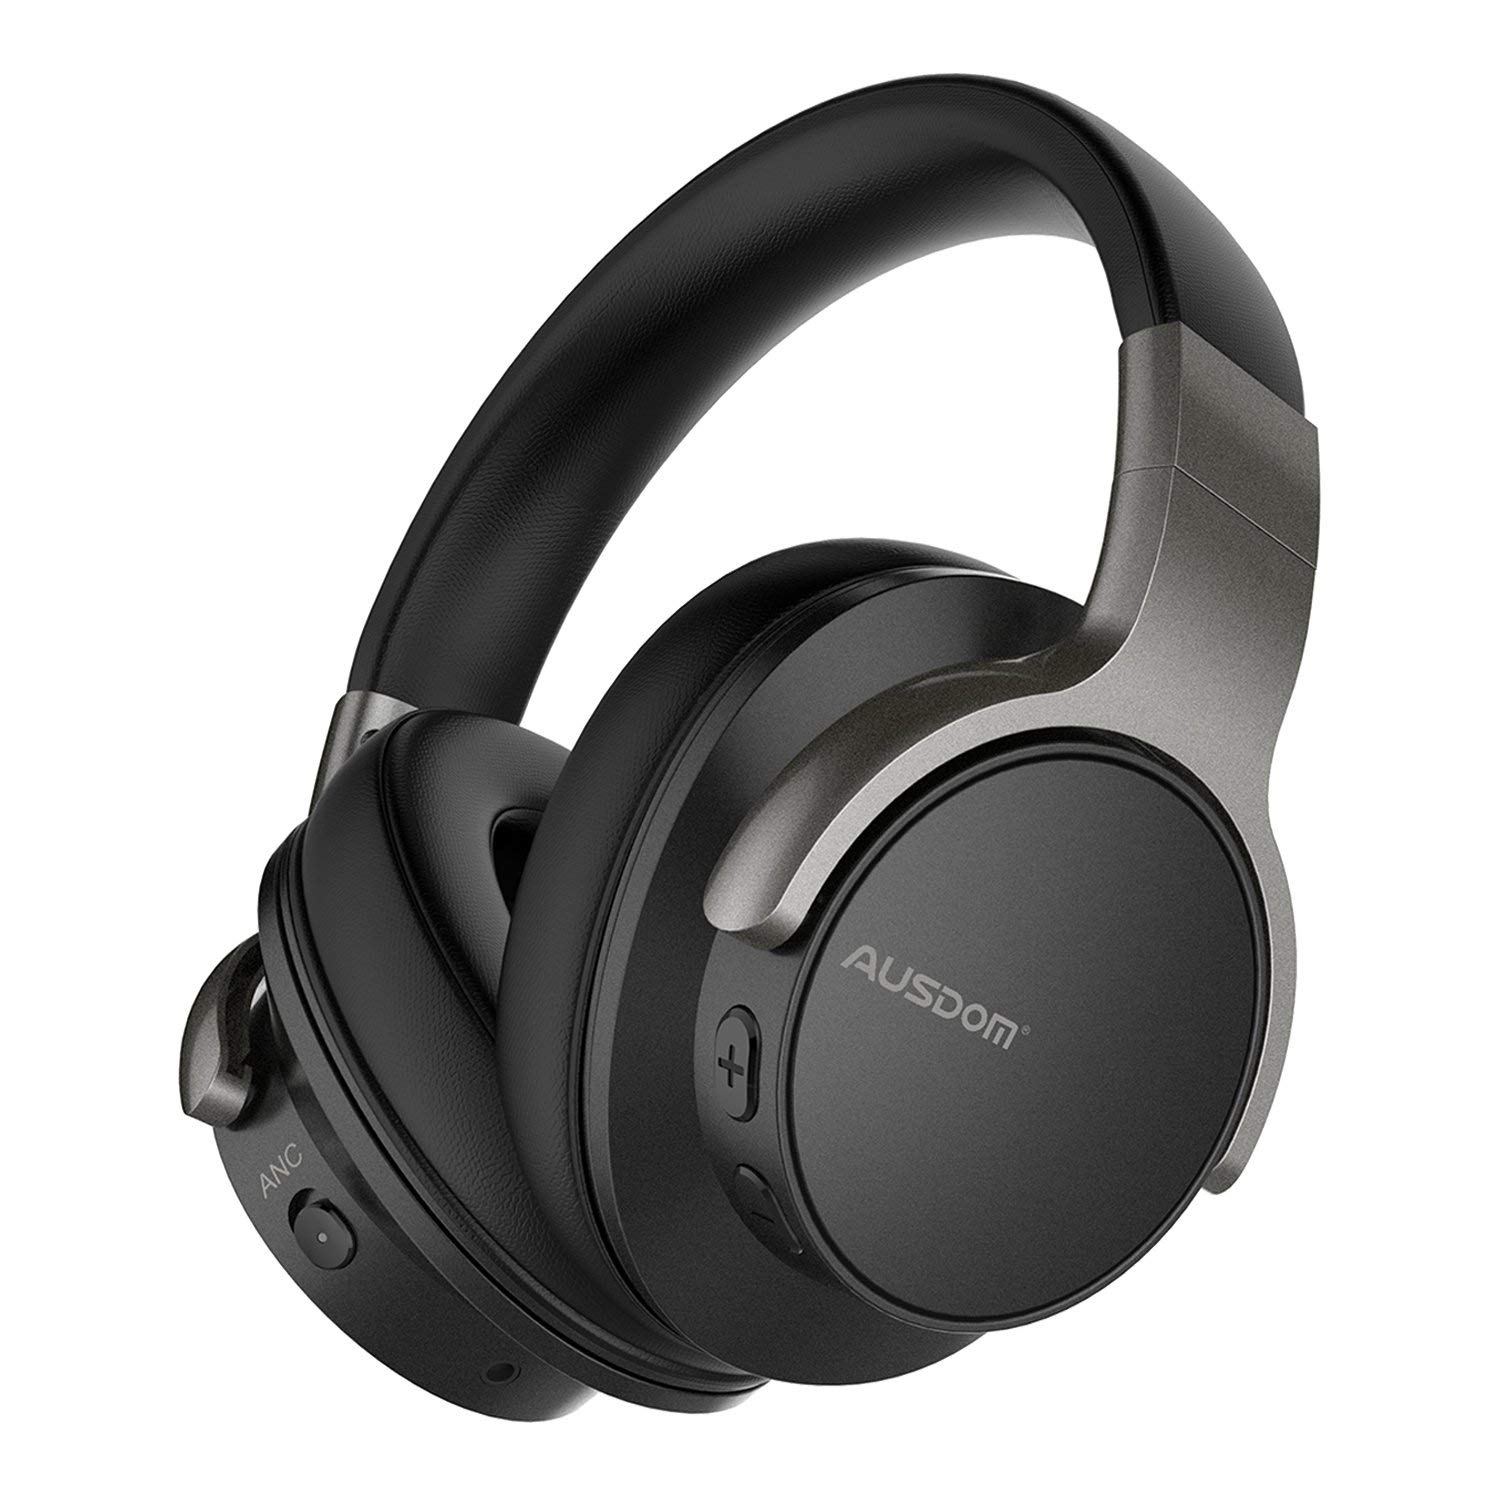 Active Noise Cancelling Bluetooth Headphones AUSDOM ANC8 Wireless Over-Ear Headset with HiFi & Earpad & Built-in Microphone & 30 Hours Playtime